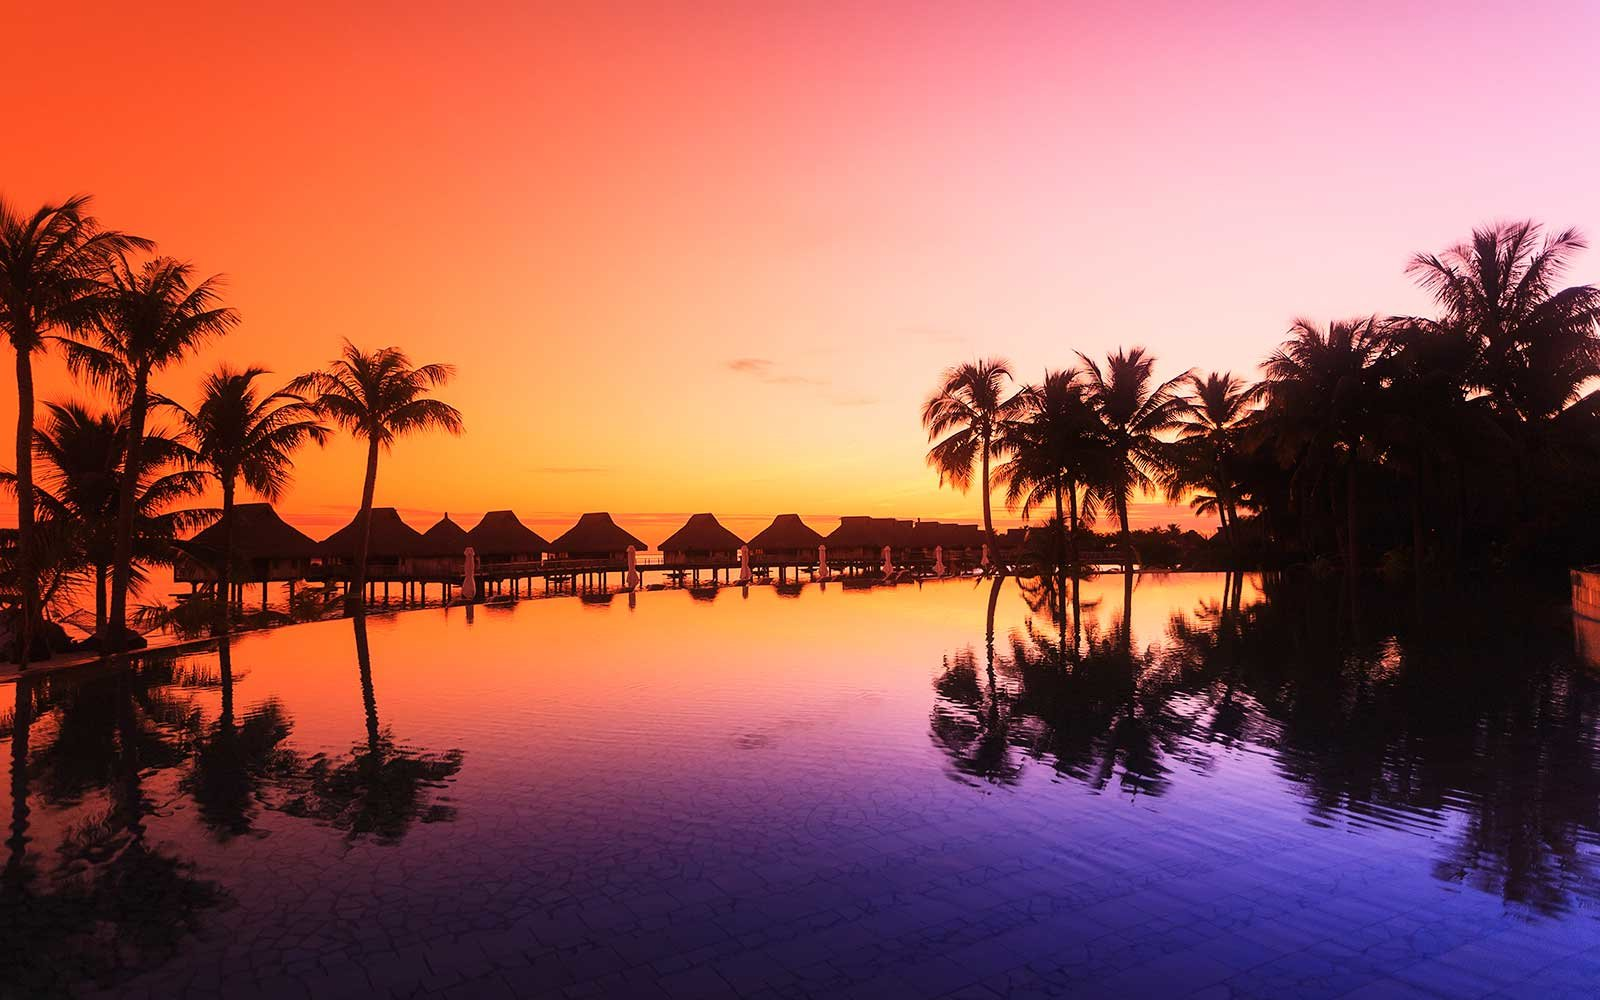 World s Best Awards  The Most Romantic Islands. World s Best Romantic Islands   Travel   Leisure